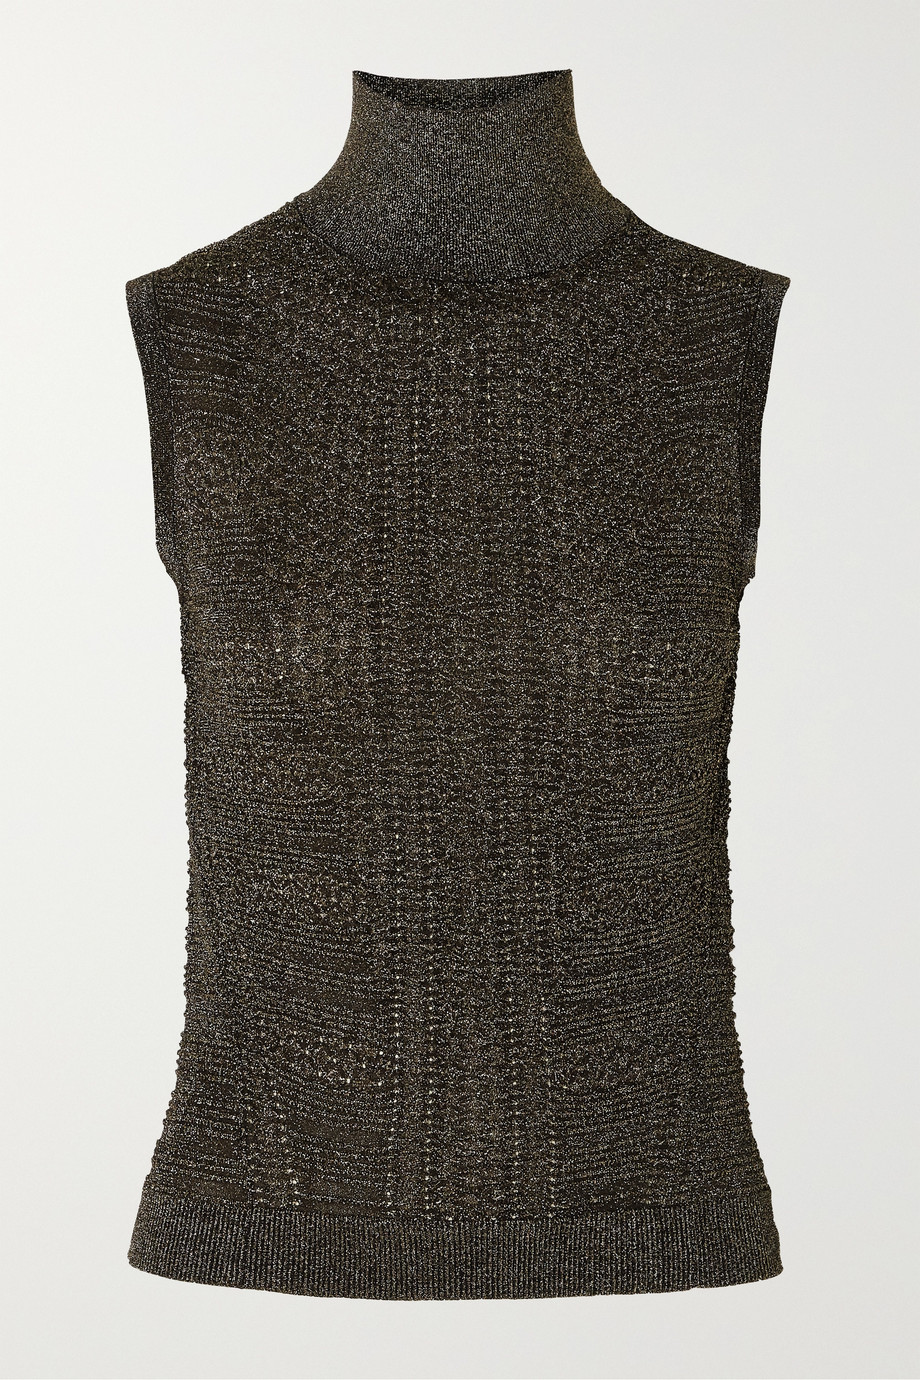 Chloé Metallic ribbed-knit turtleneck top